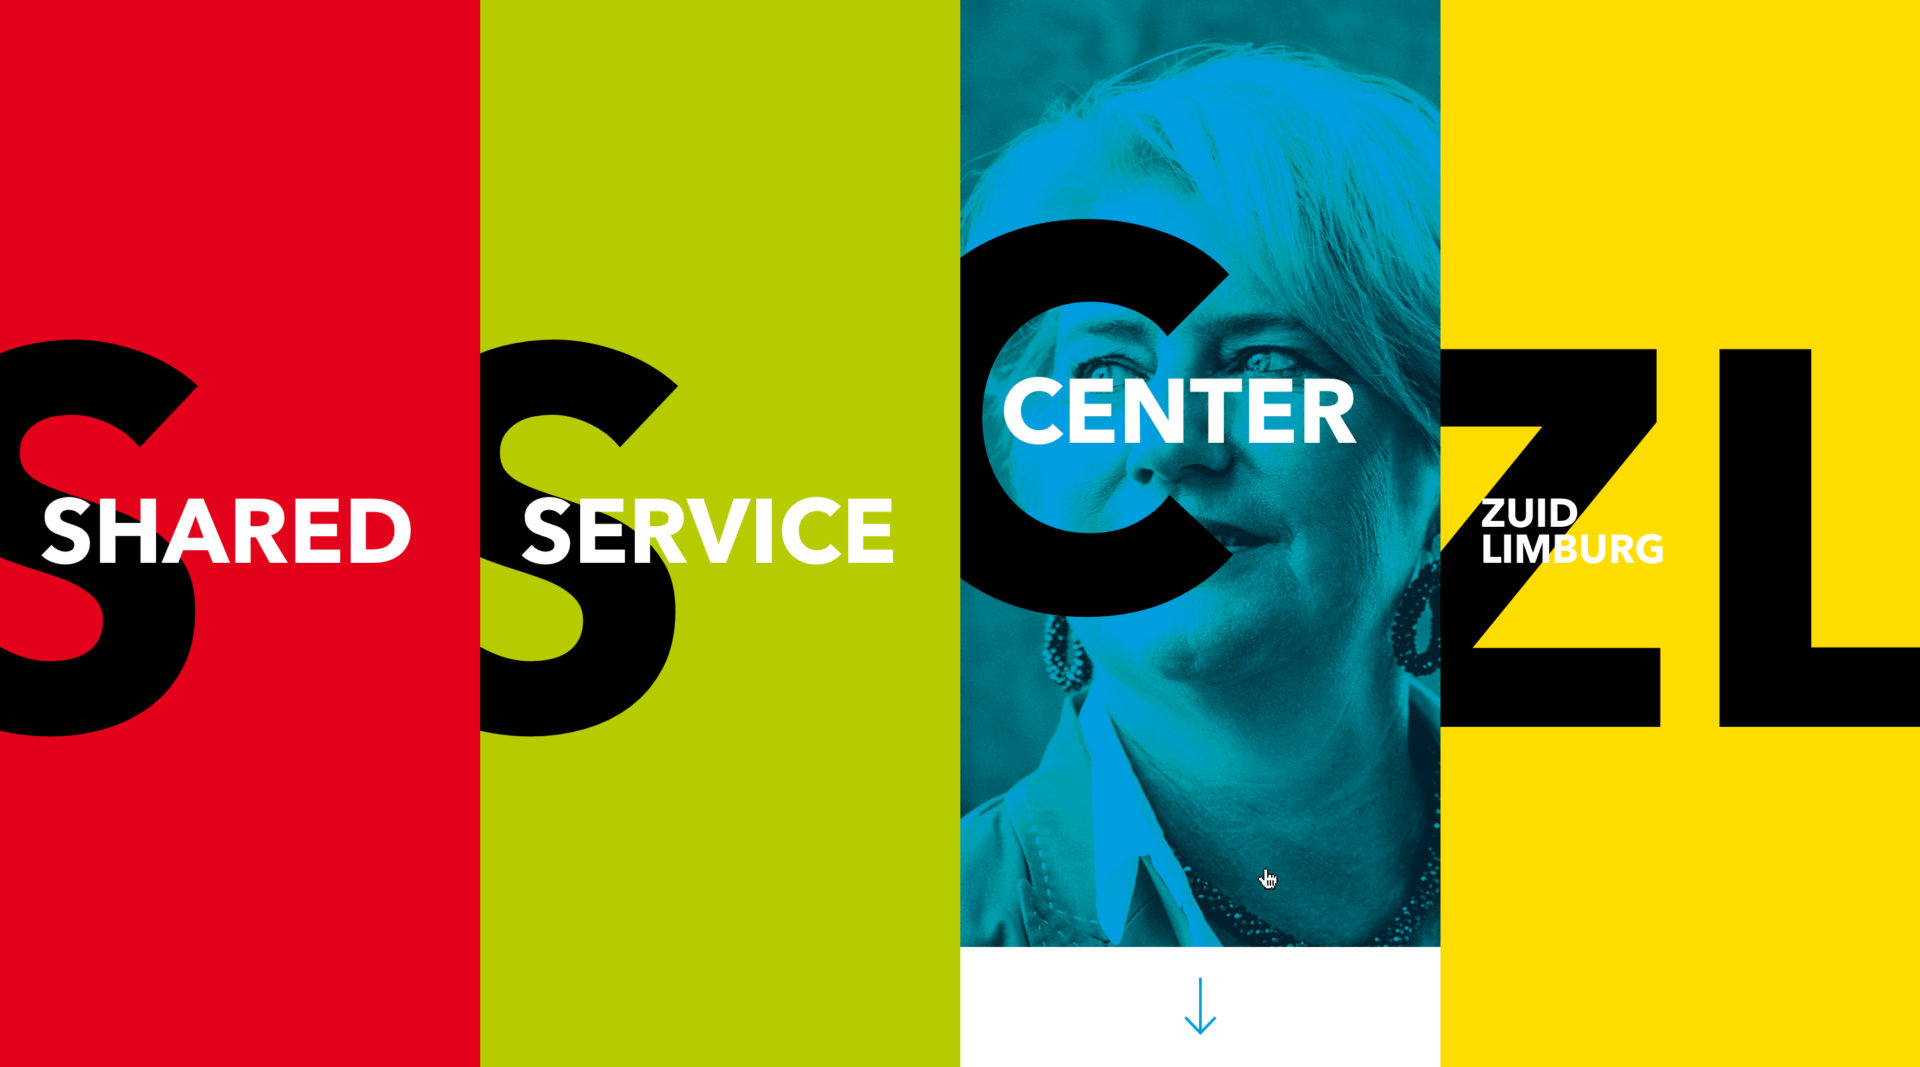 Shared Service Center Zuid Limburg banner - Rene Verkaart)